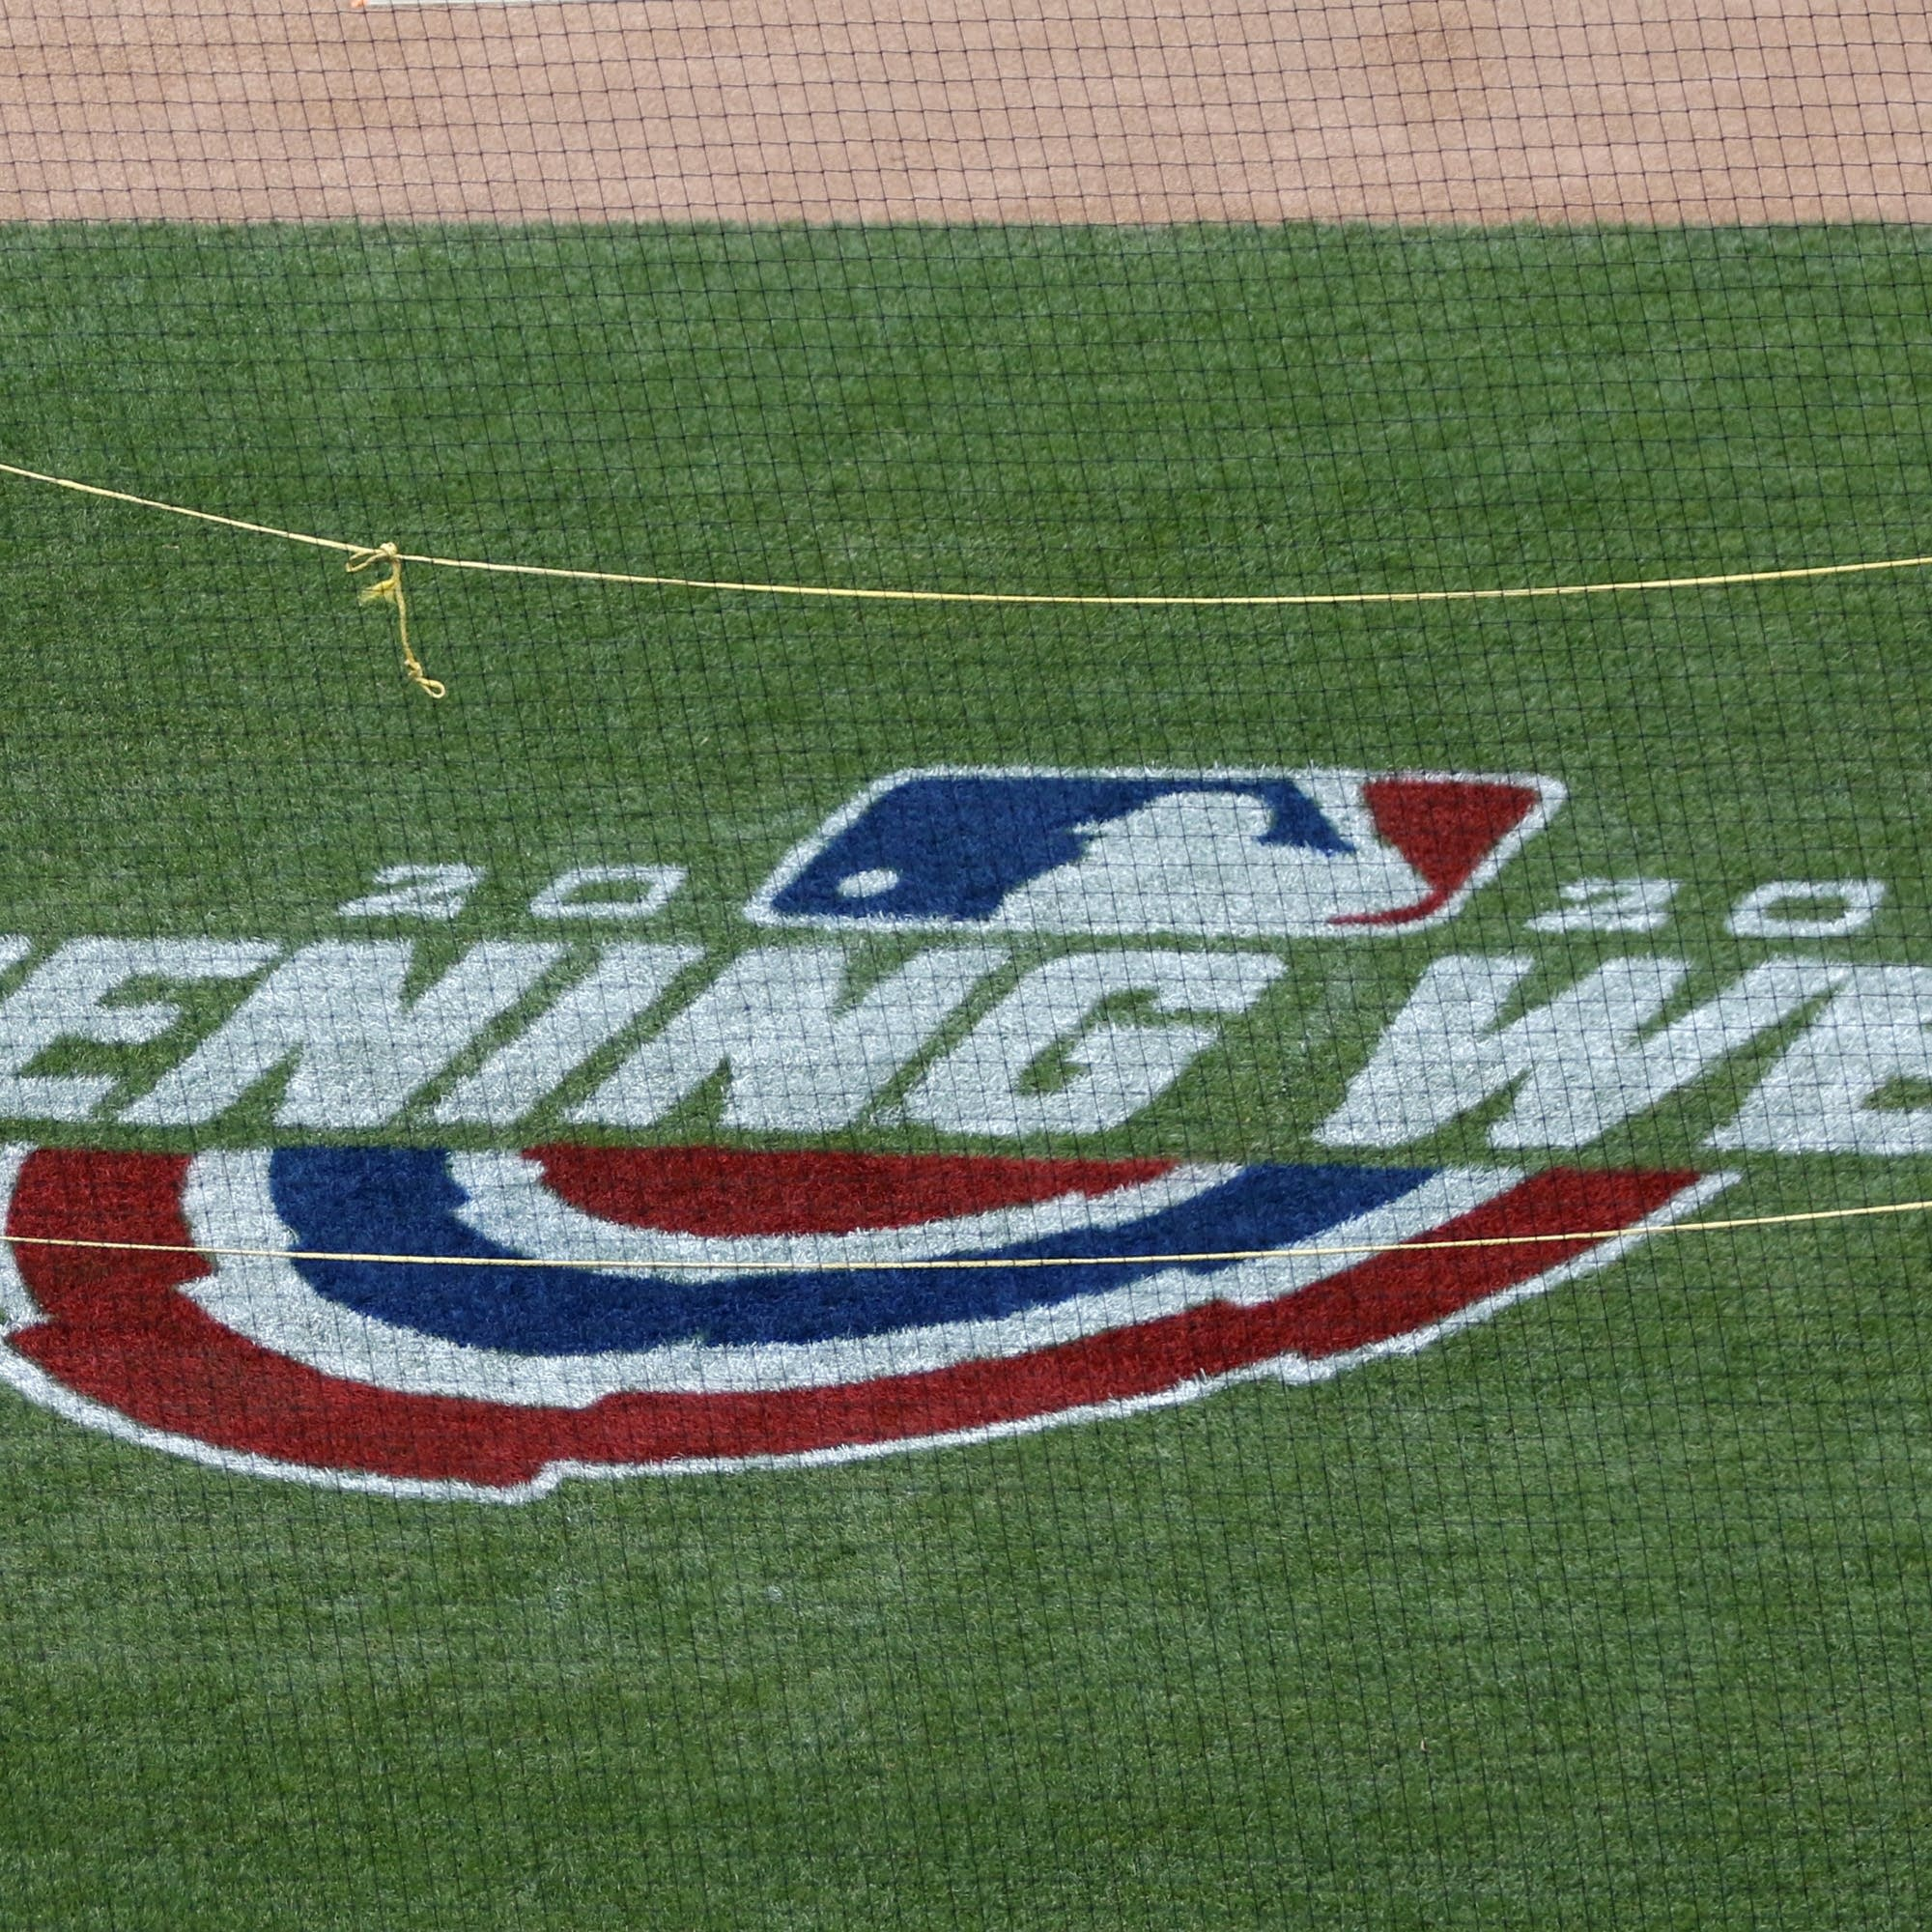 An opening week logo is displayed at Citi Field in New York.